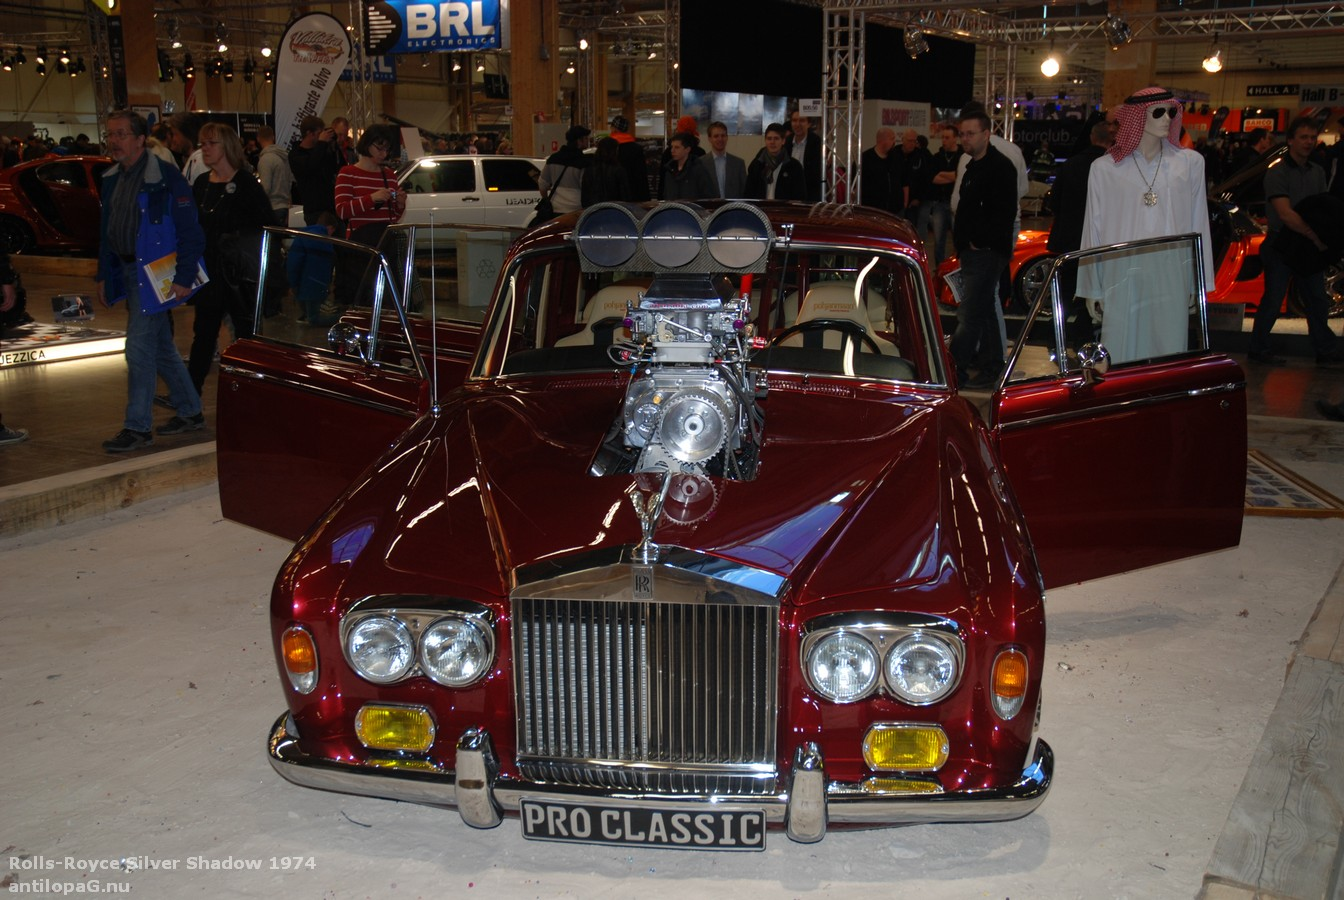 Rolls-Royce Silver Shadow 1974